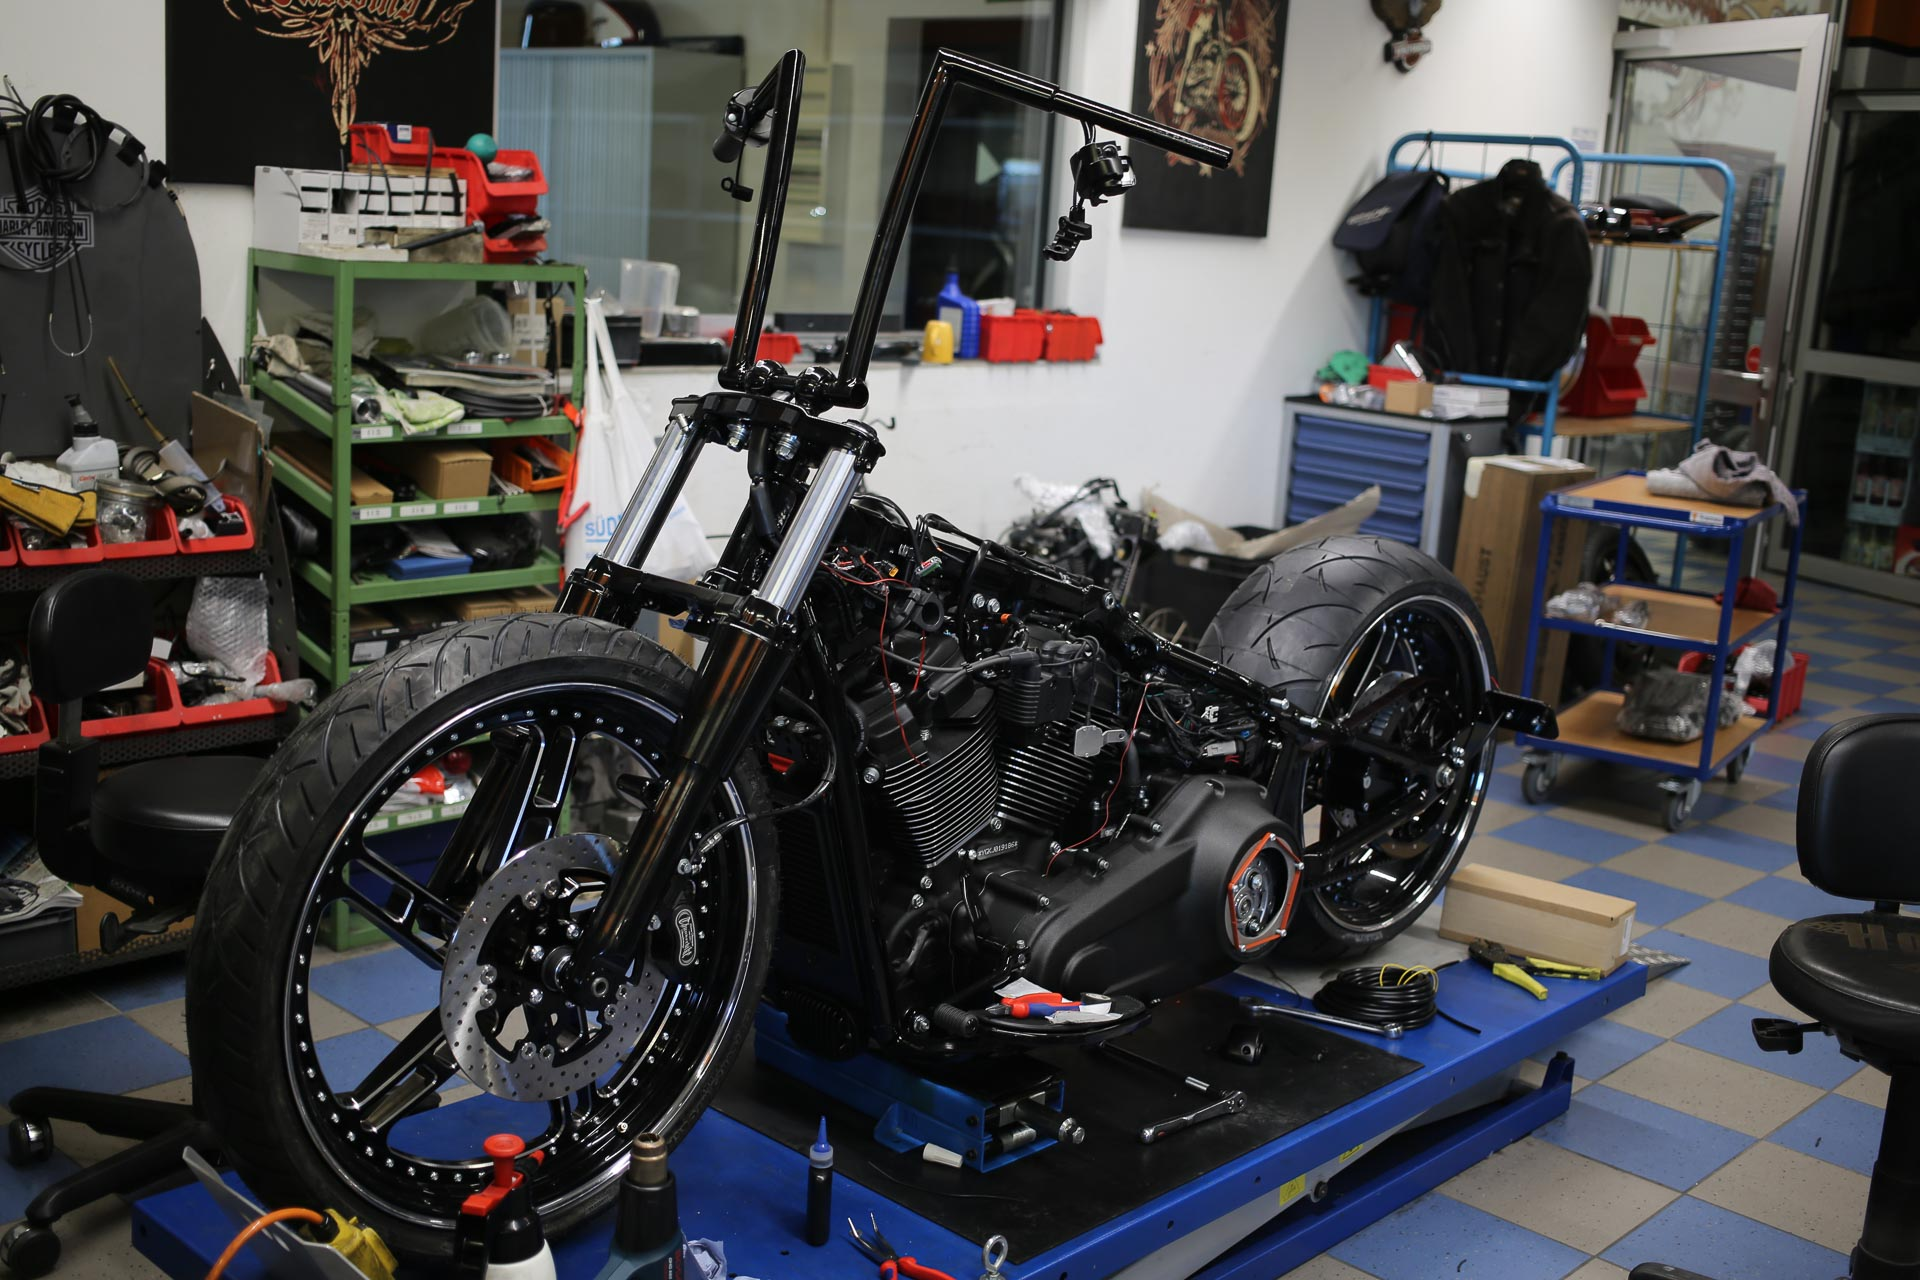 Thunderbike Black Apple • H D Fat Boy FLFBS Custom Motorcycle